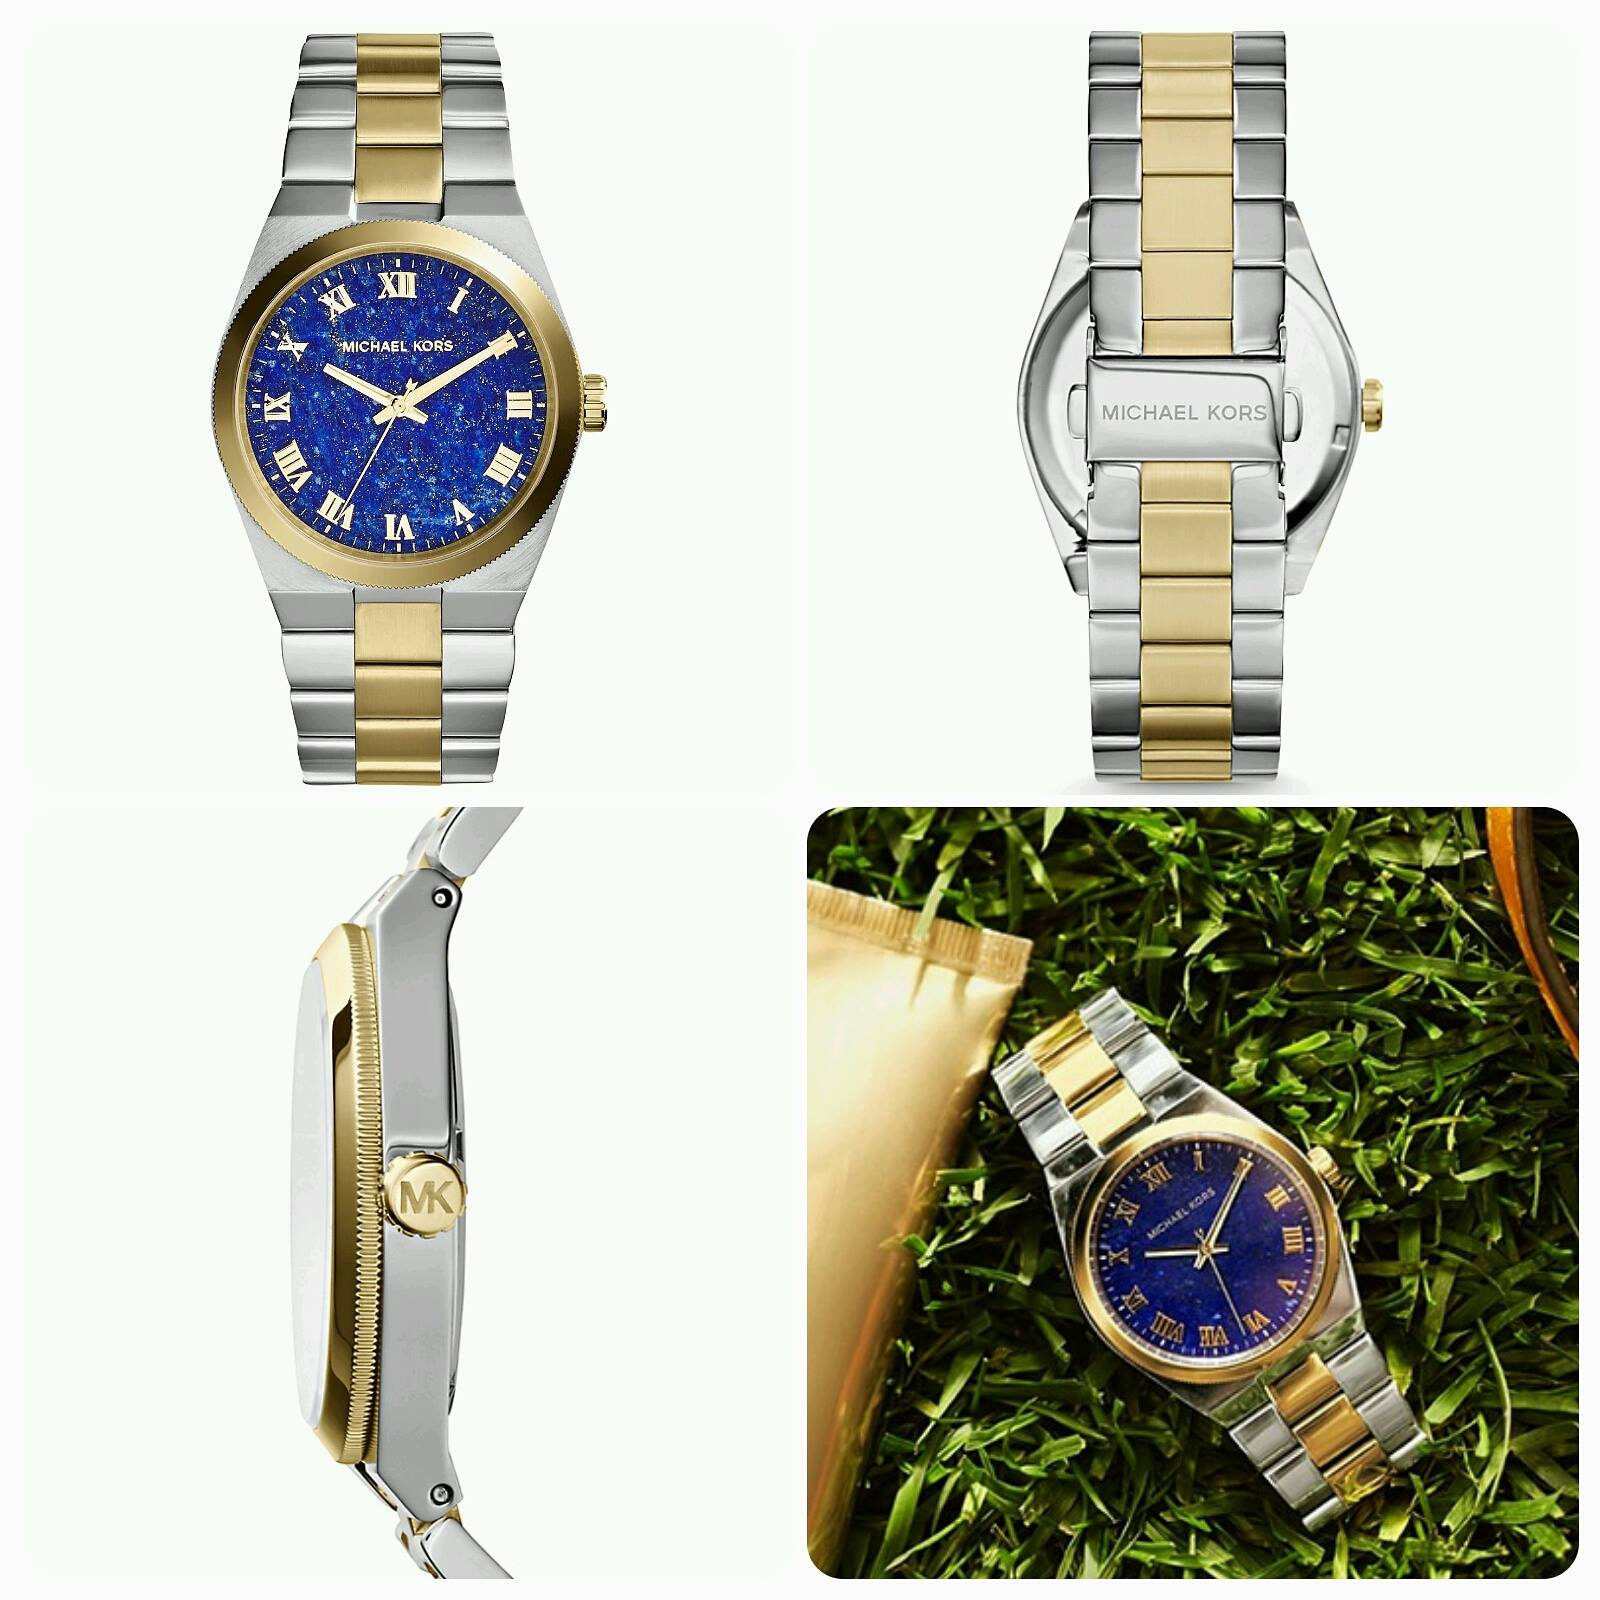 9ec753402bef PrettyTreasure2u  MK5893 Channing Two -Tone Blue Dial Watch